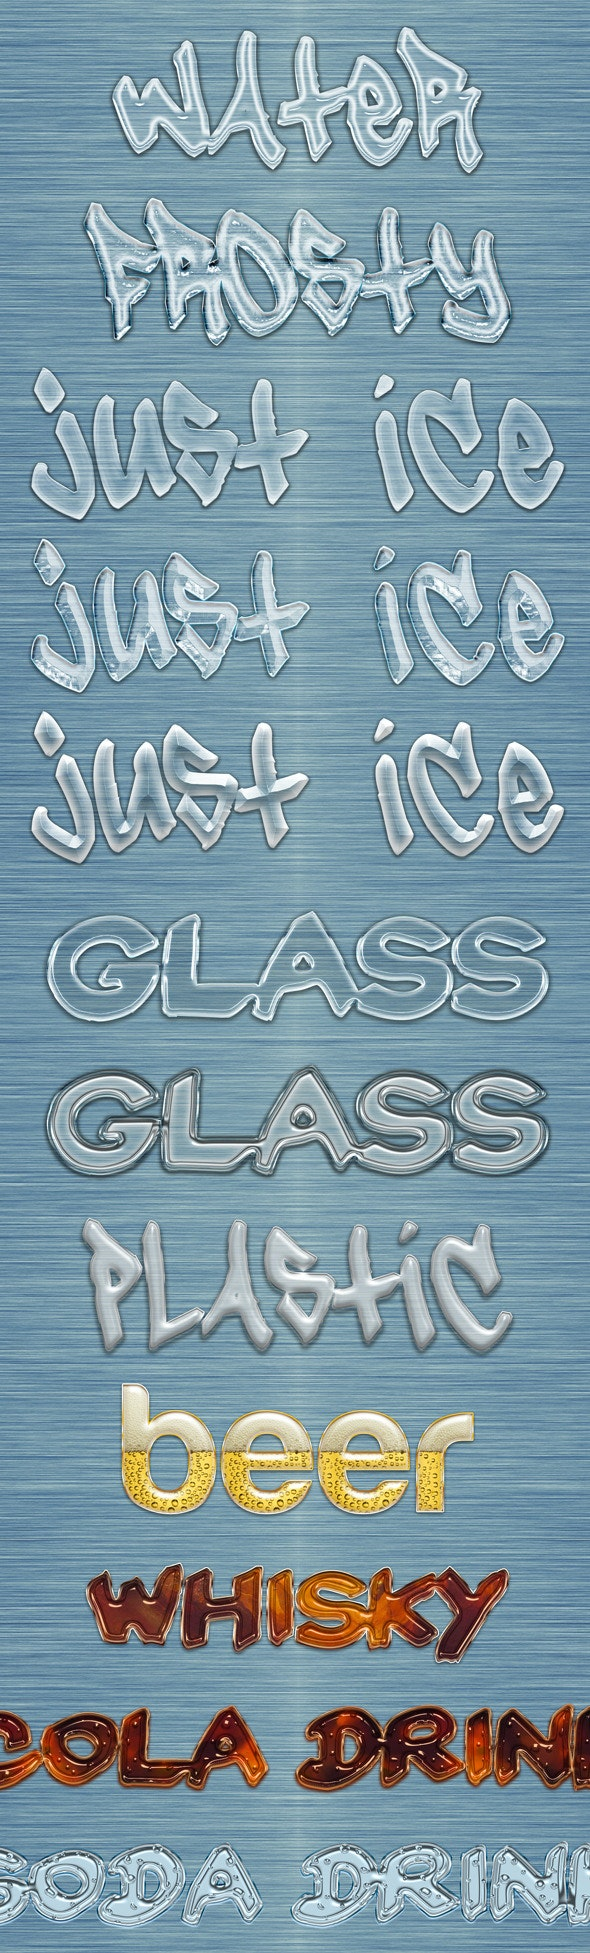 Translucent Liquid Styles - Text Effects Styles